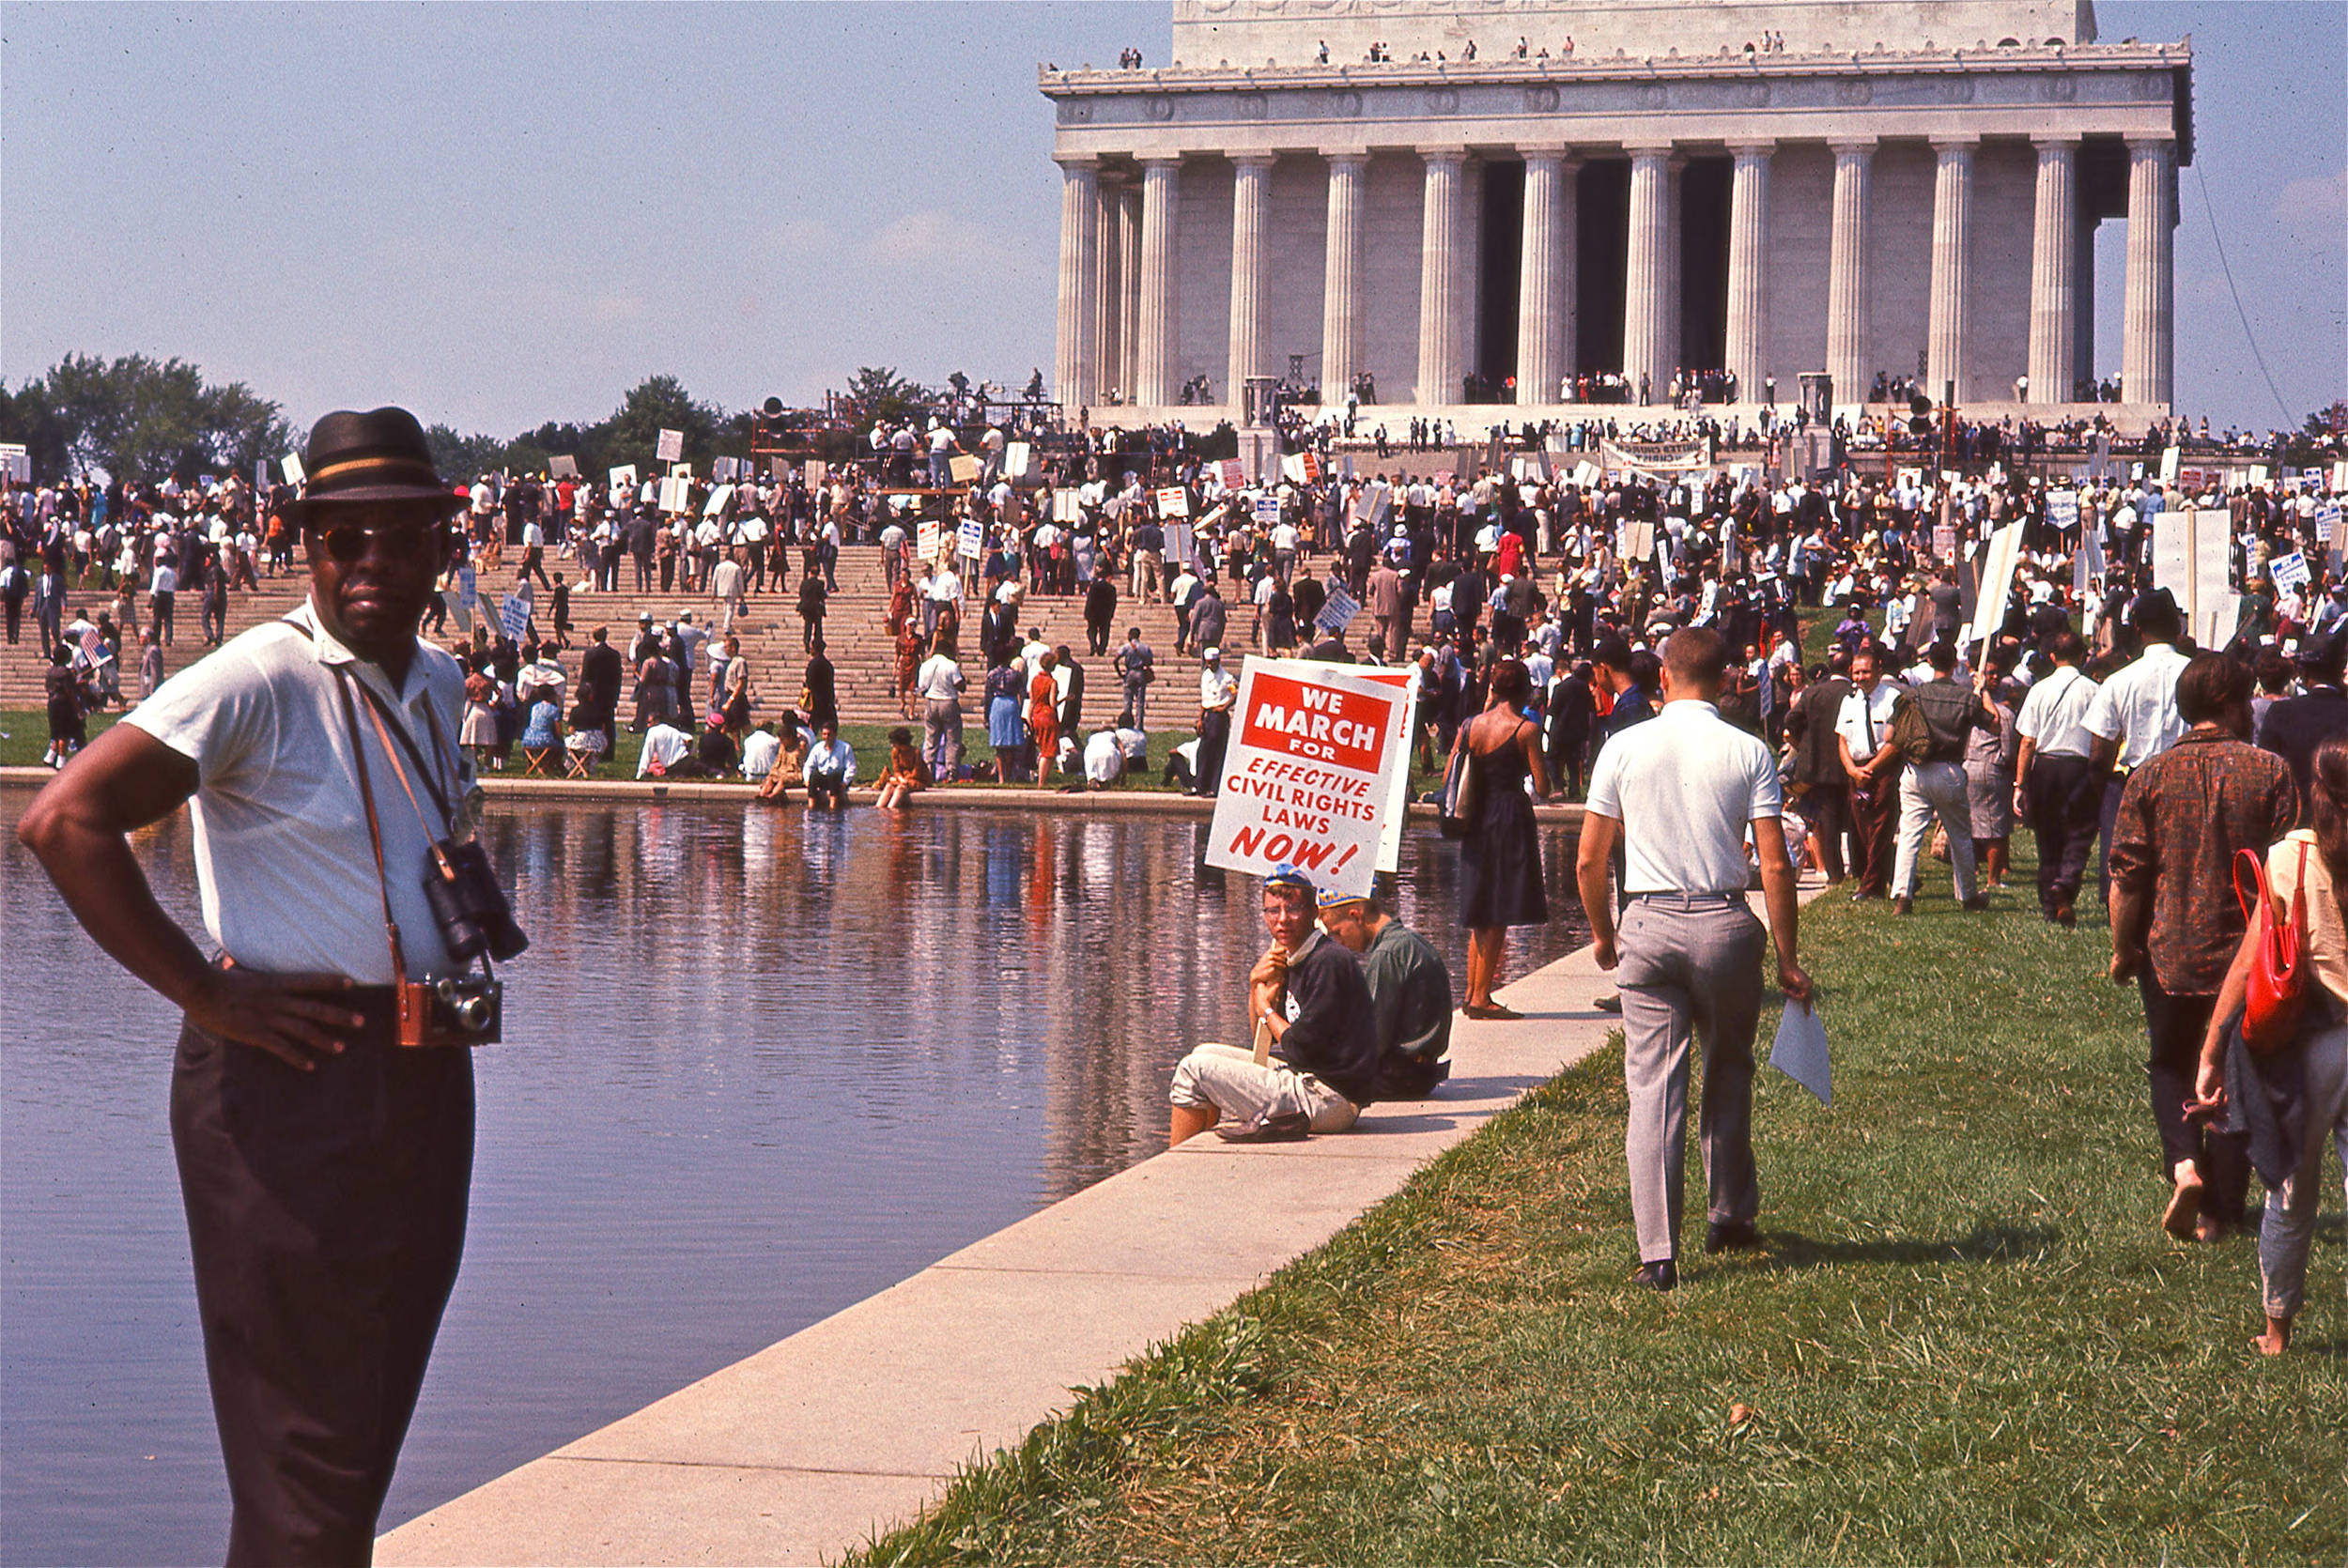 Crowd gathering at the Lincoln Memorial for the March on Washington in I AM NOT YOUR NEGRO, a Magnolia Pictures release. Photo courtesy of Magnolia Pictures.